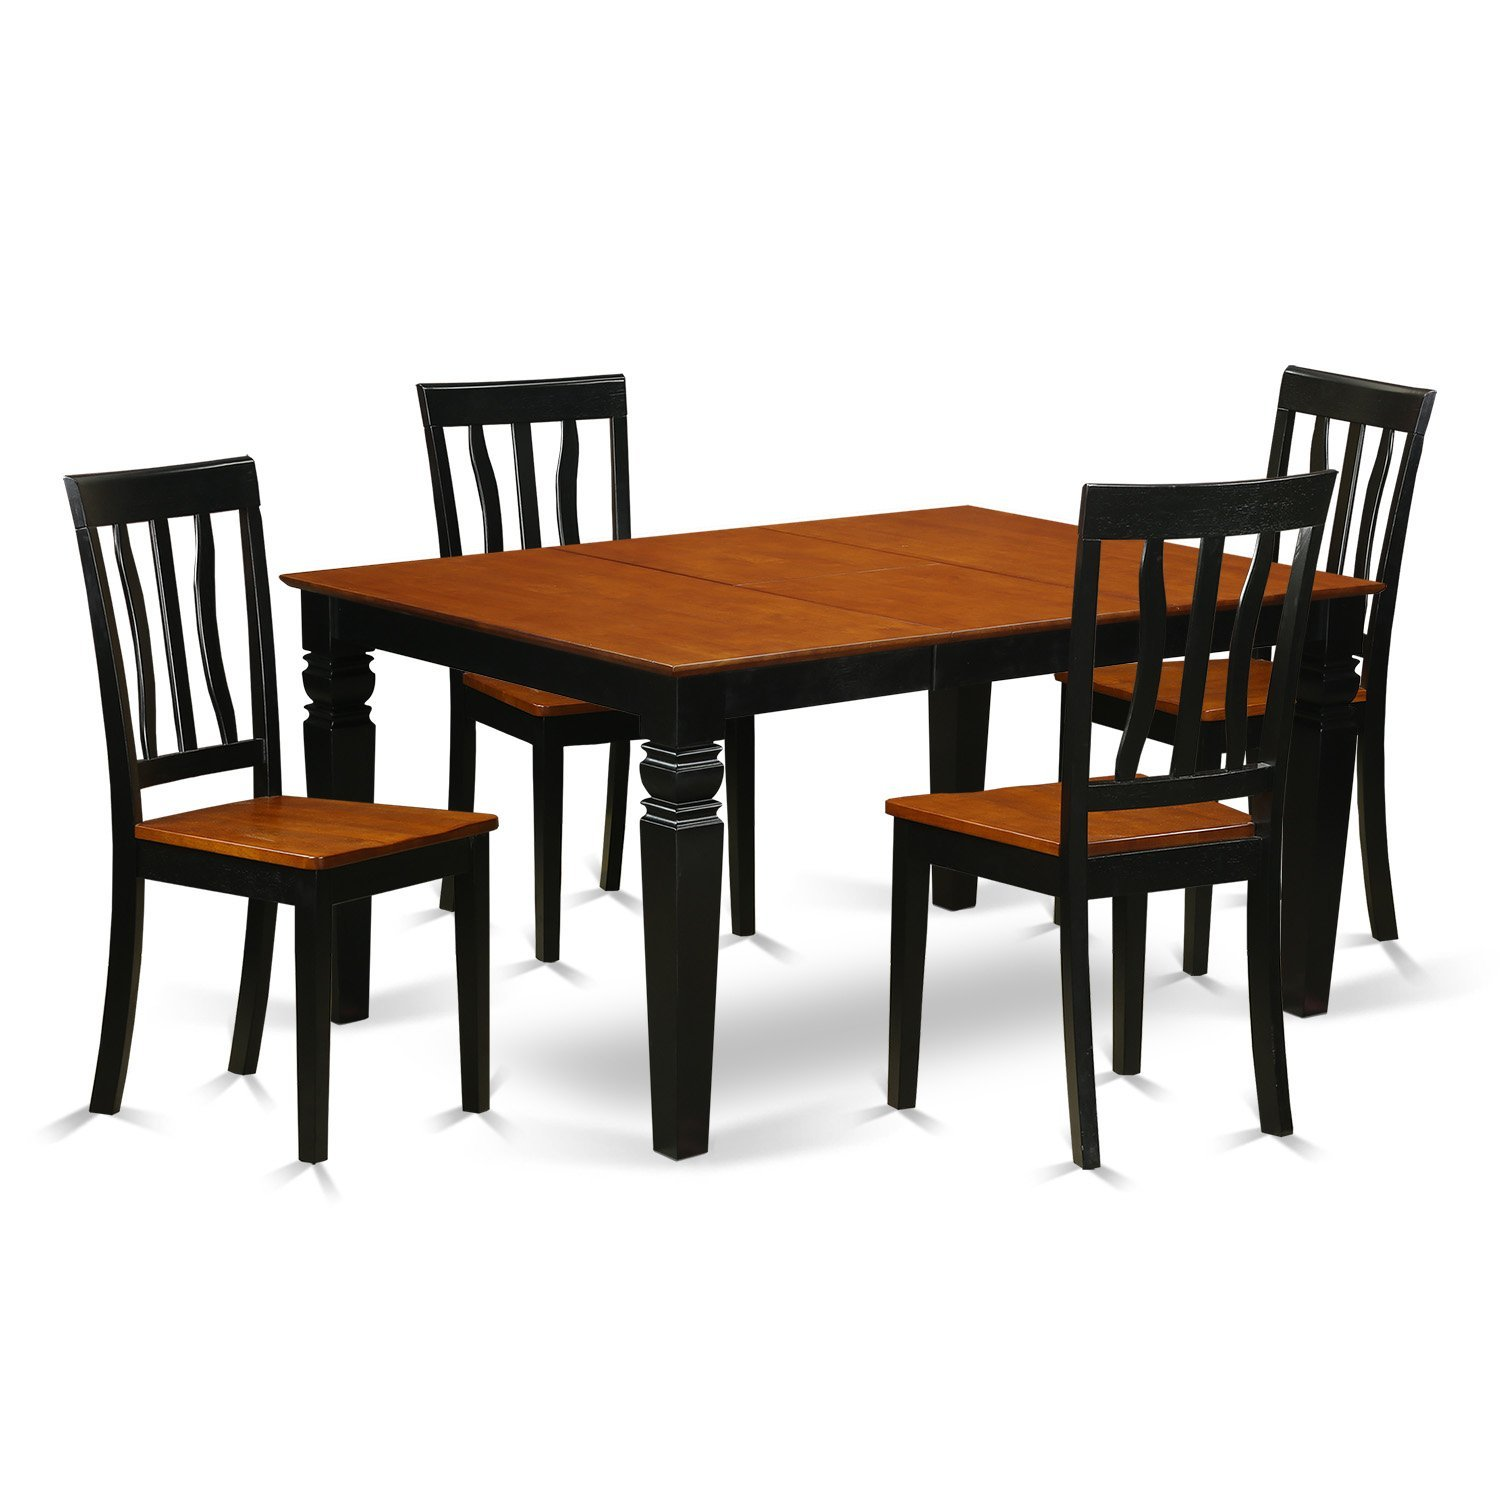 East West Furniture Weston WEAN5-BCH-W 5 Pc Set with a Dining Table and 4 Wood Kitchen Chairs, Black